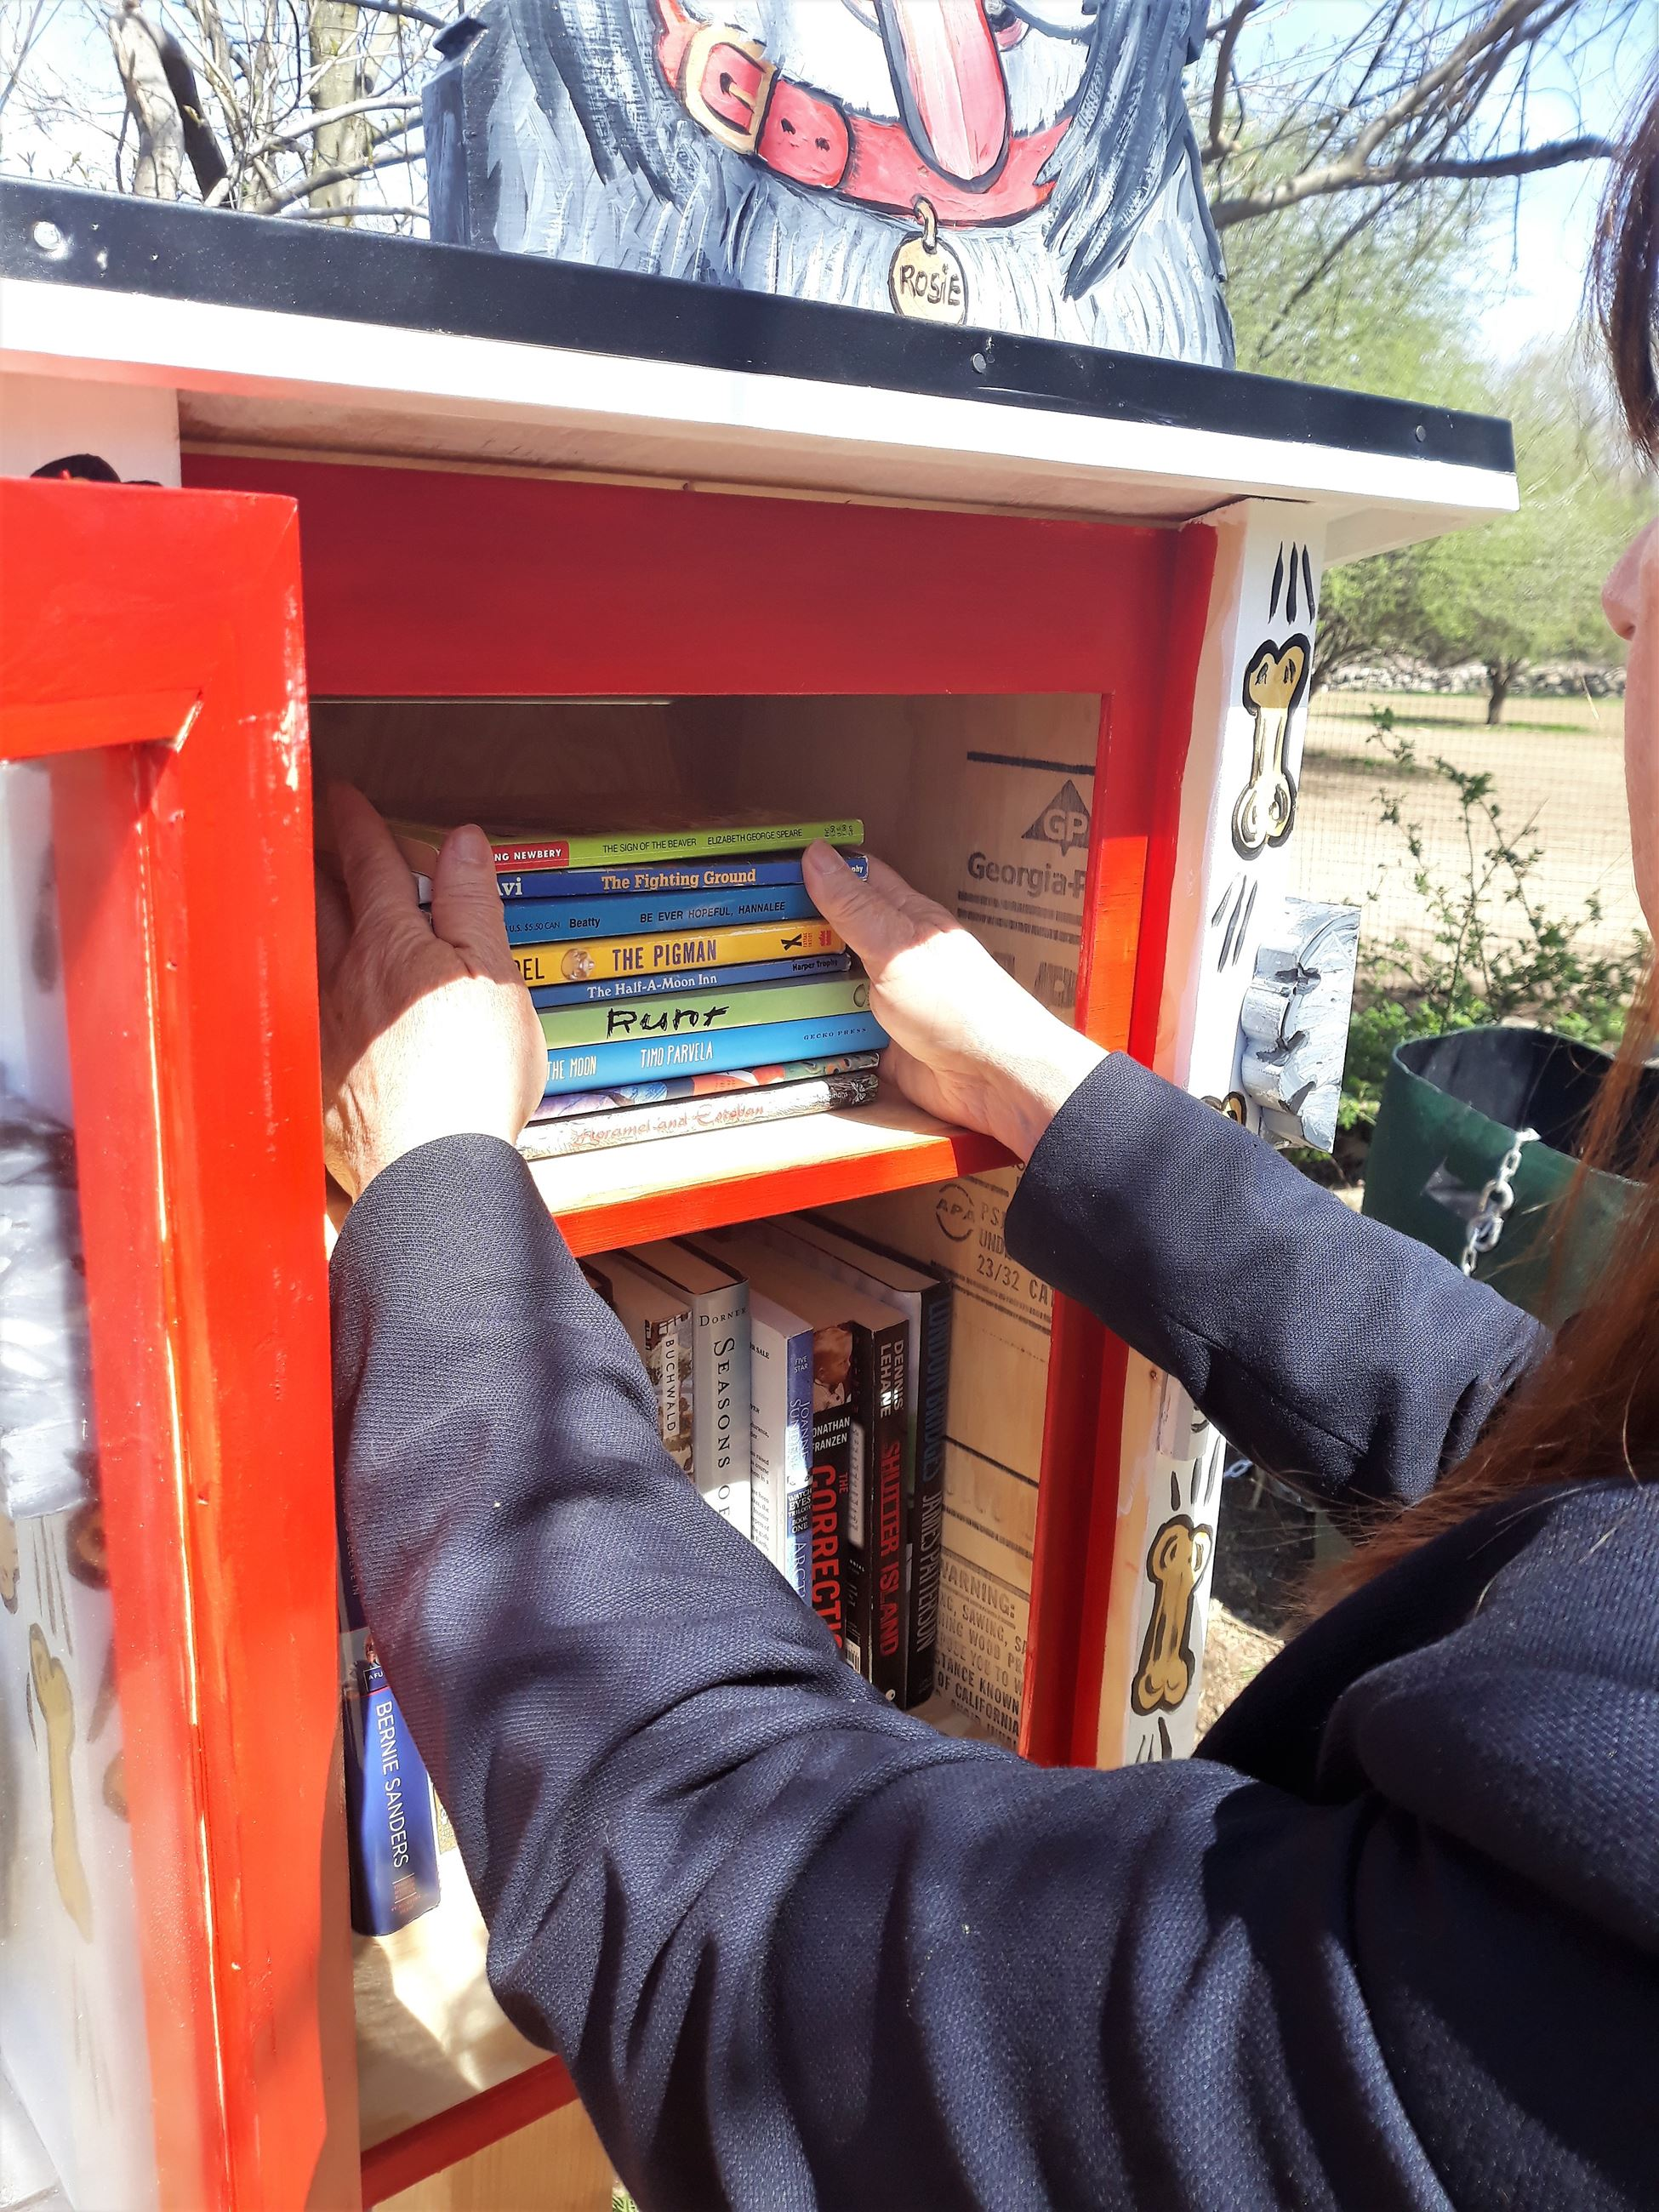 Pop up Libraries